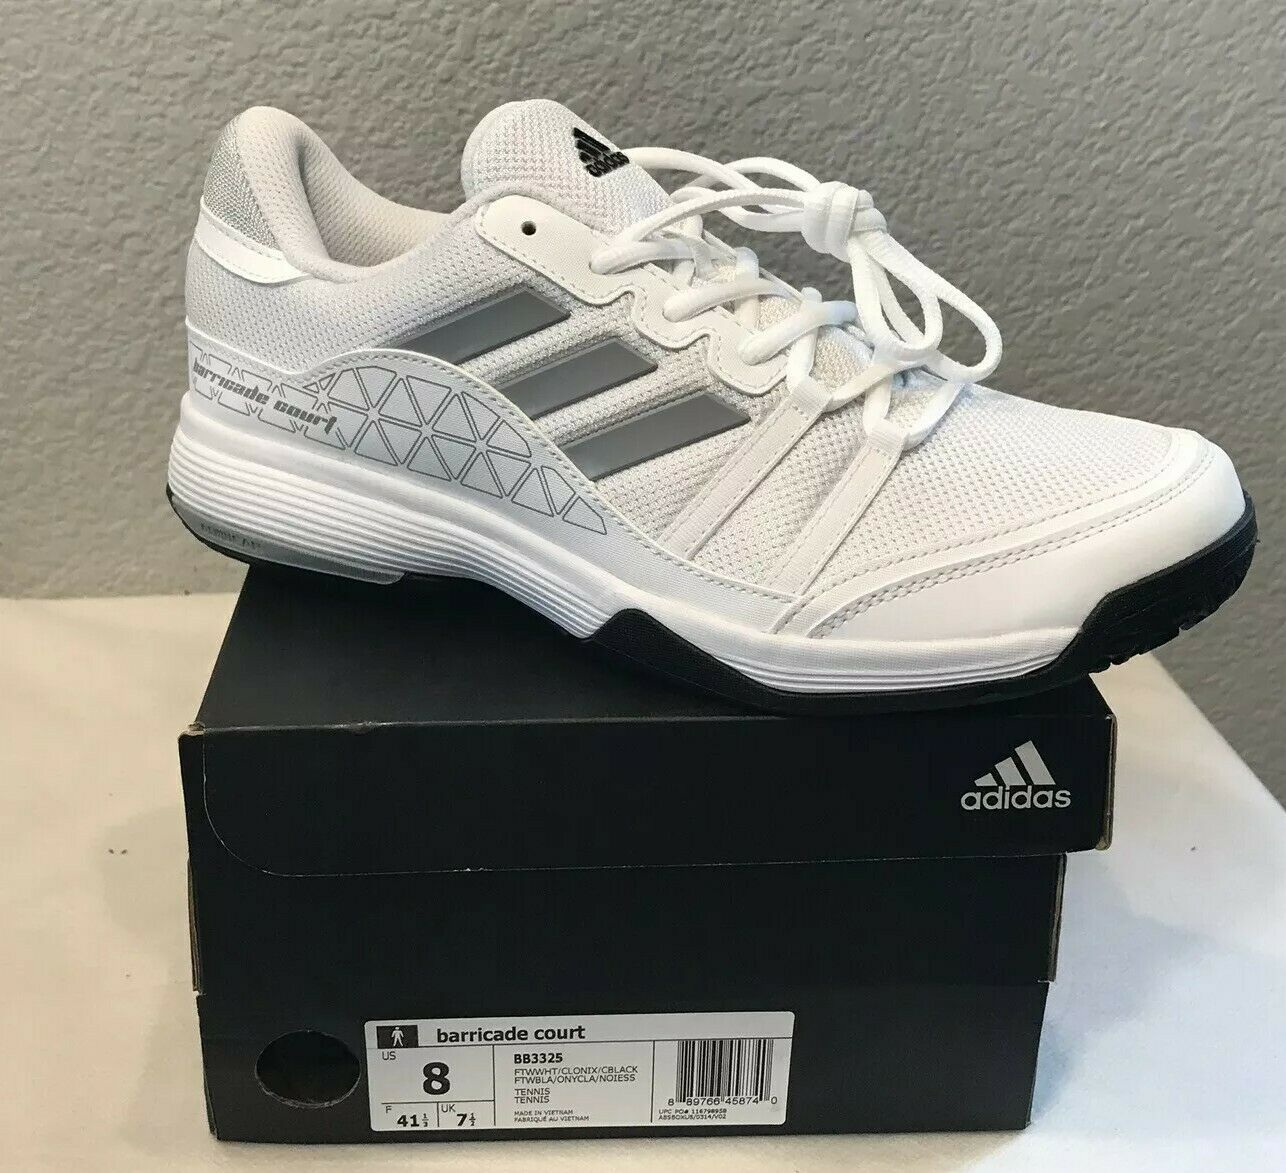 NEW   Men's Adidas Barricade Court Tennis shoes White (BB3325) Men's Size 8